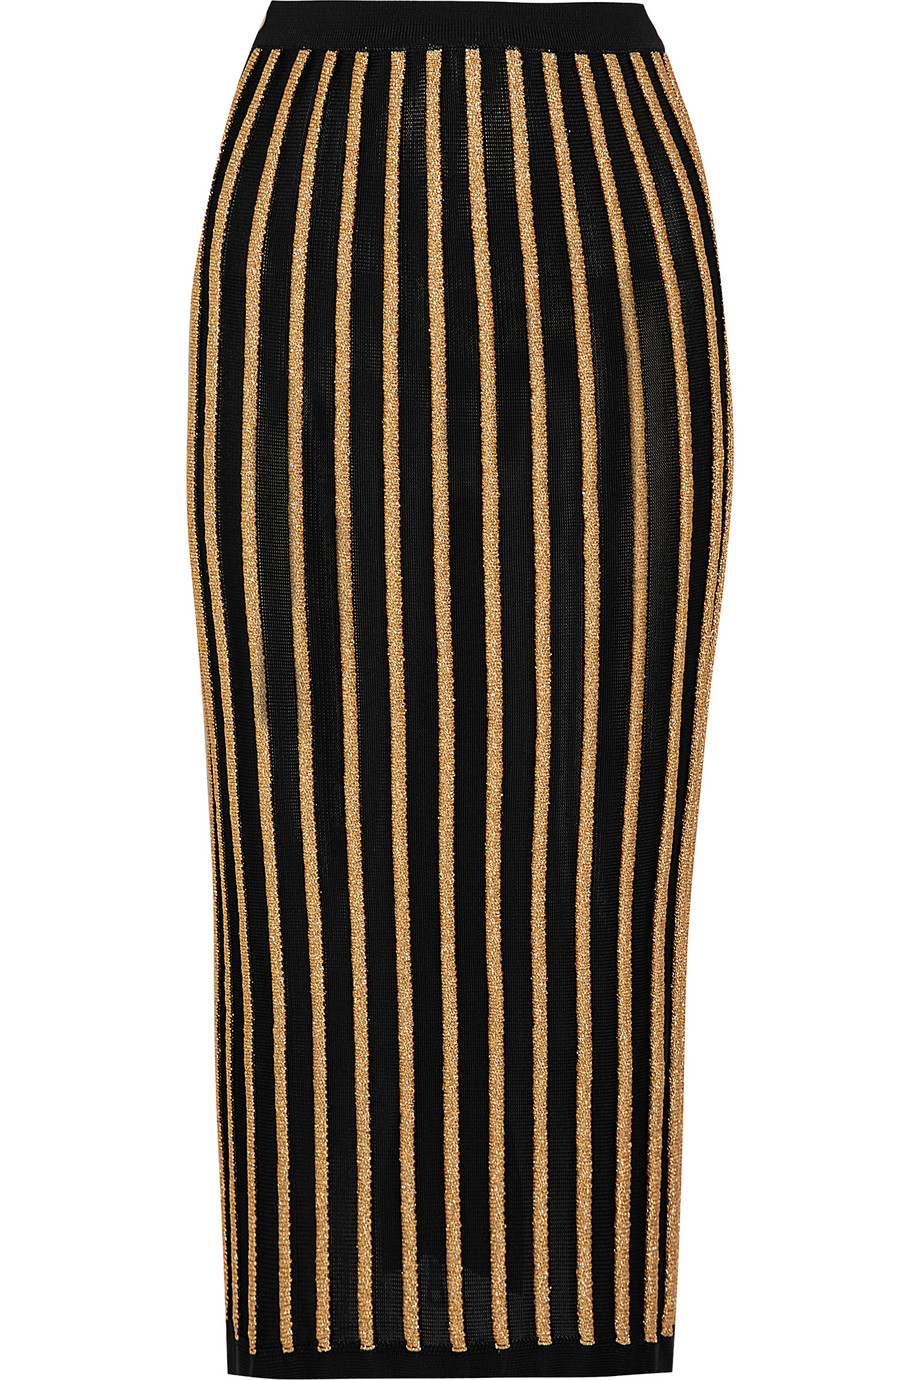 Balmain Striped Stretch-Knit Skirt, Black/Gold, Women's, Size: 36